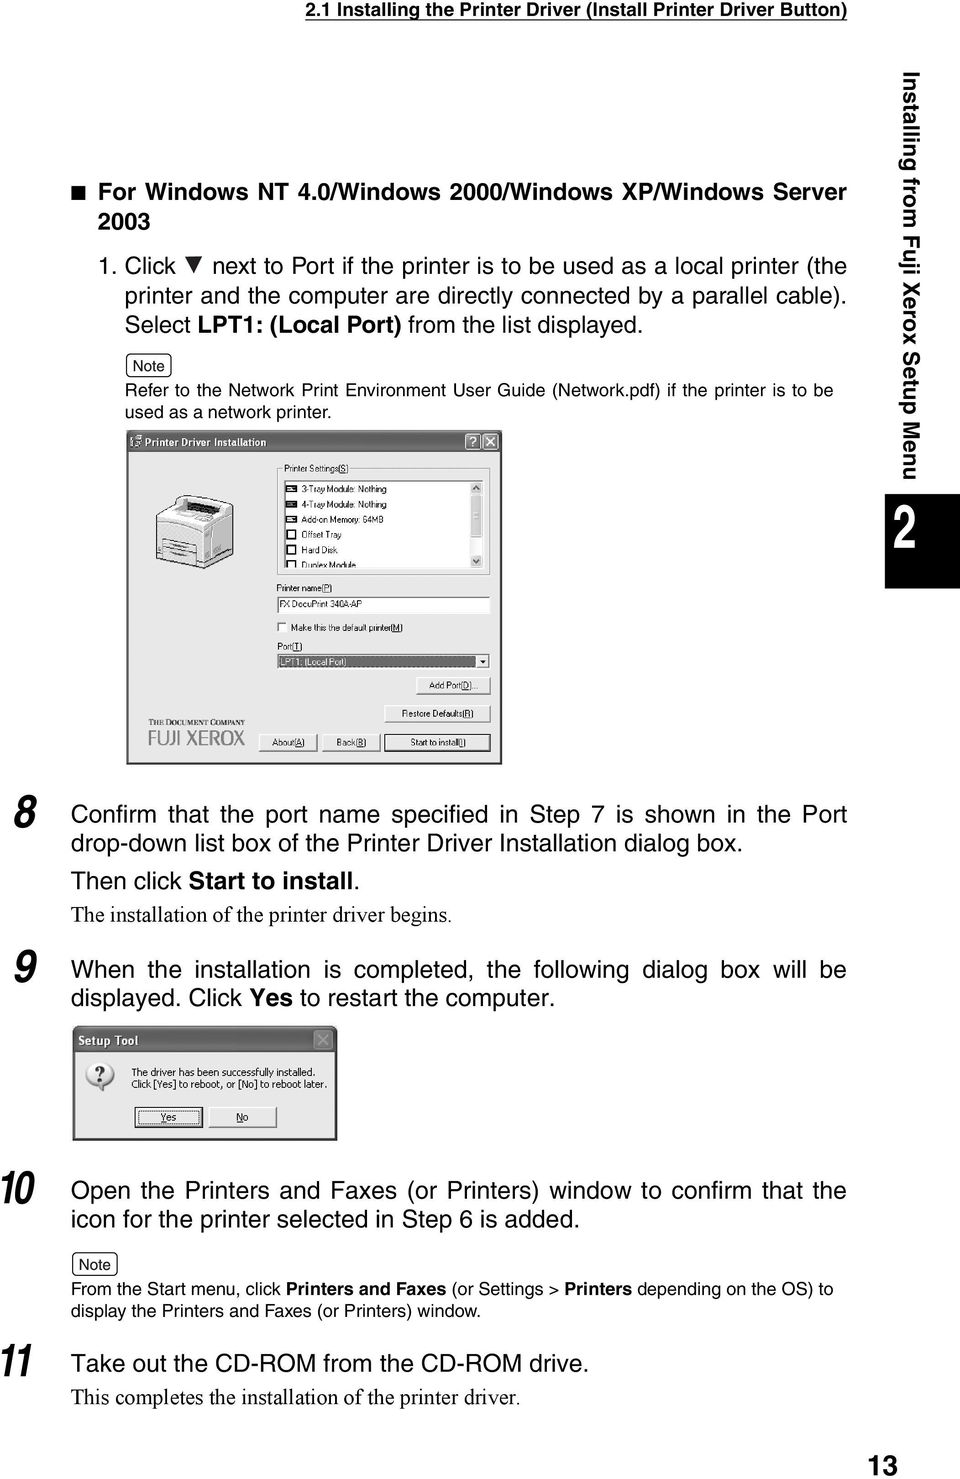 Refer to the Network Print Environment User Guide (Network.pdf) if the printer is to be used as a network printer.